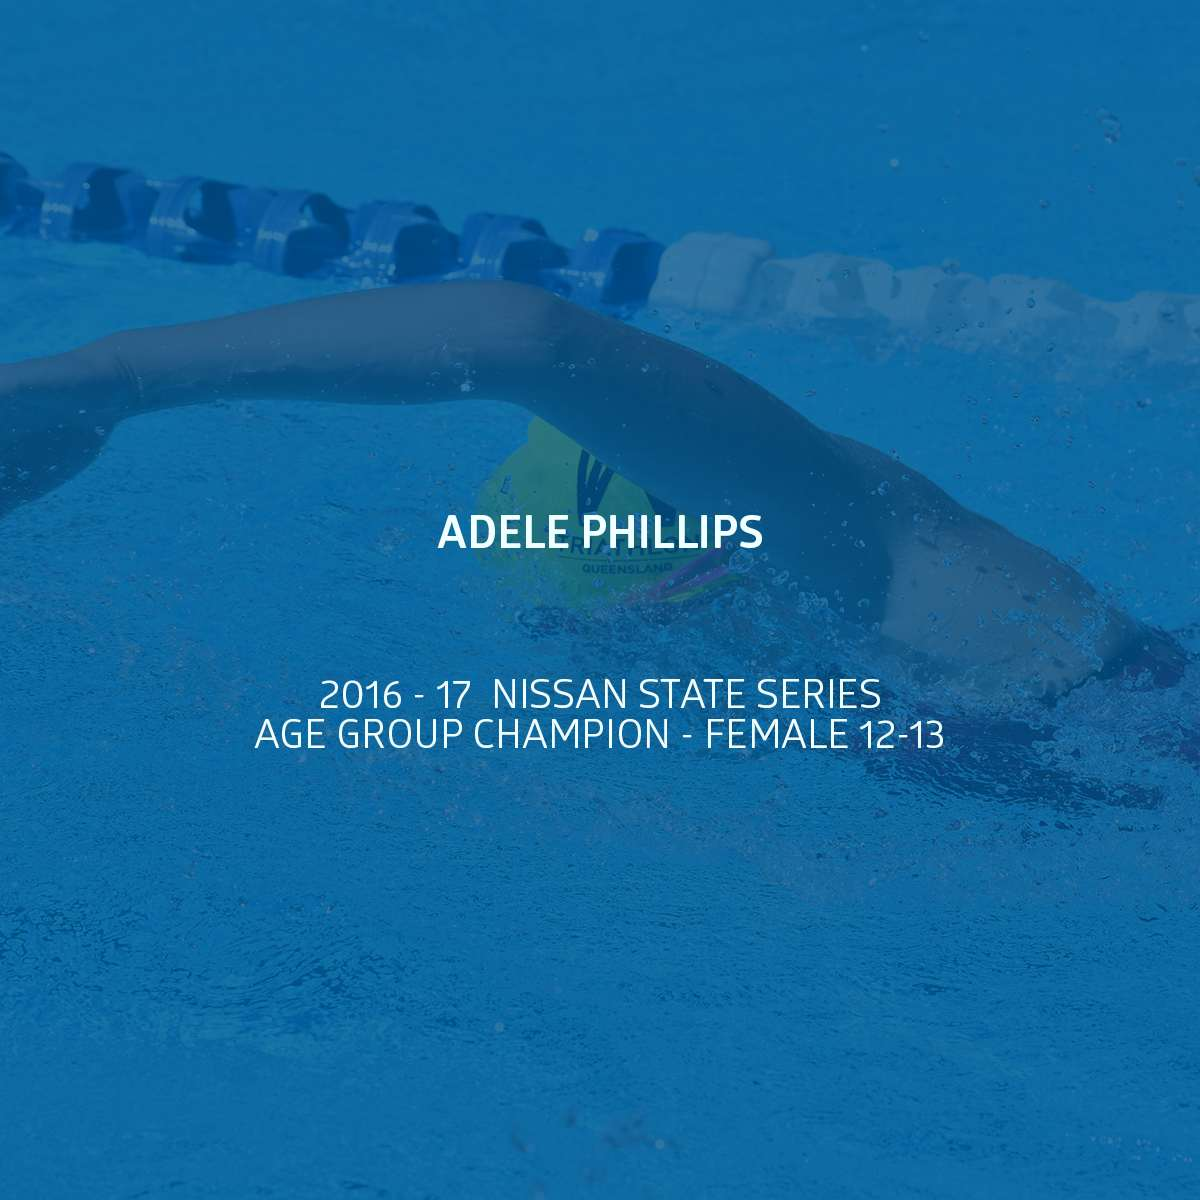 Adele Phillips